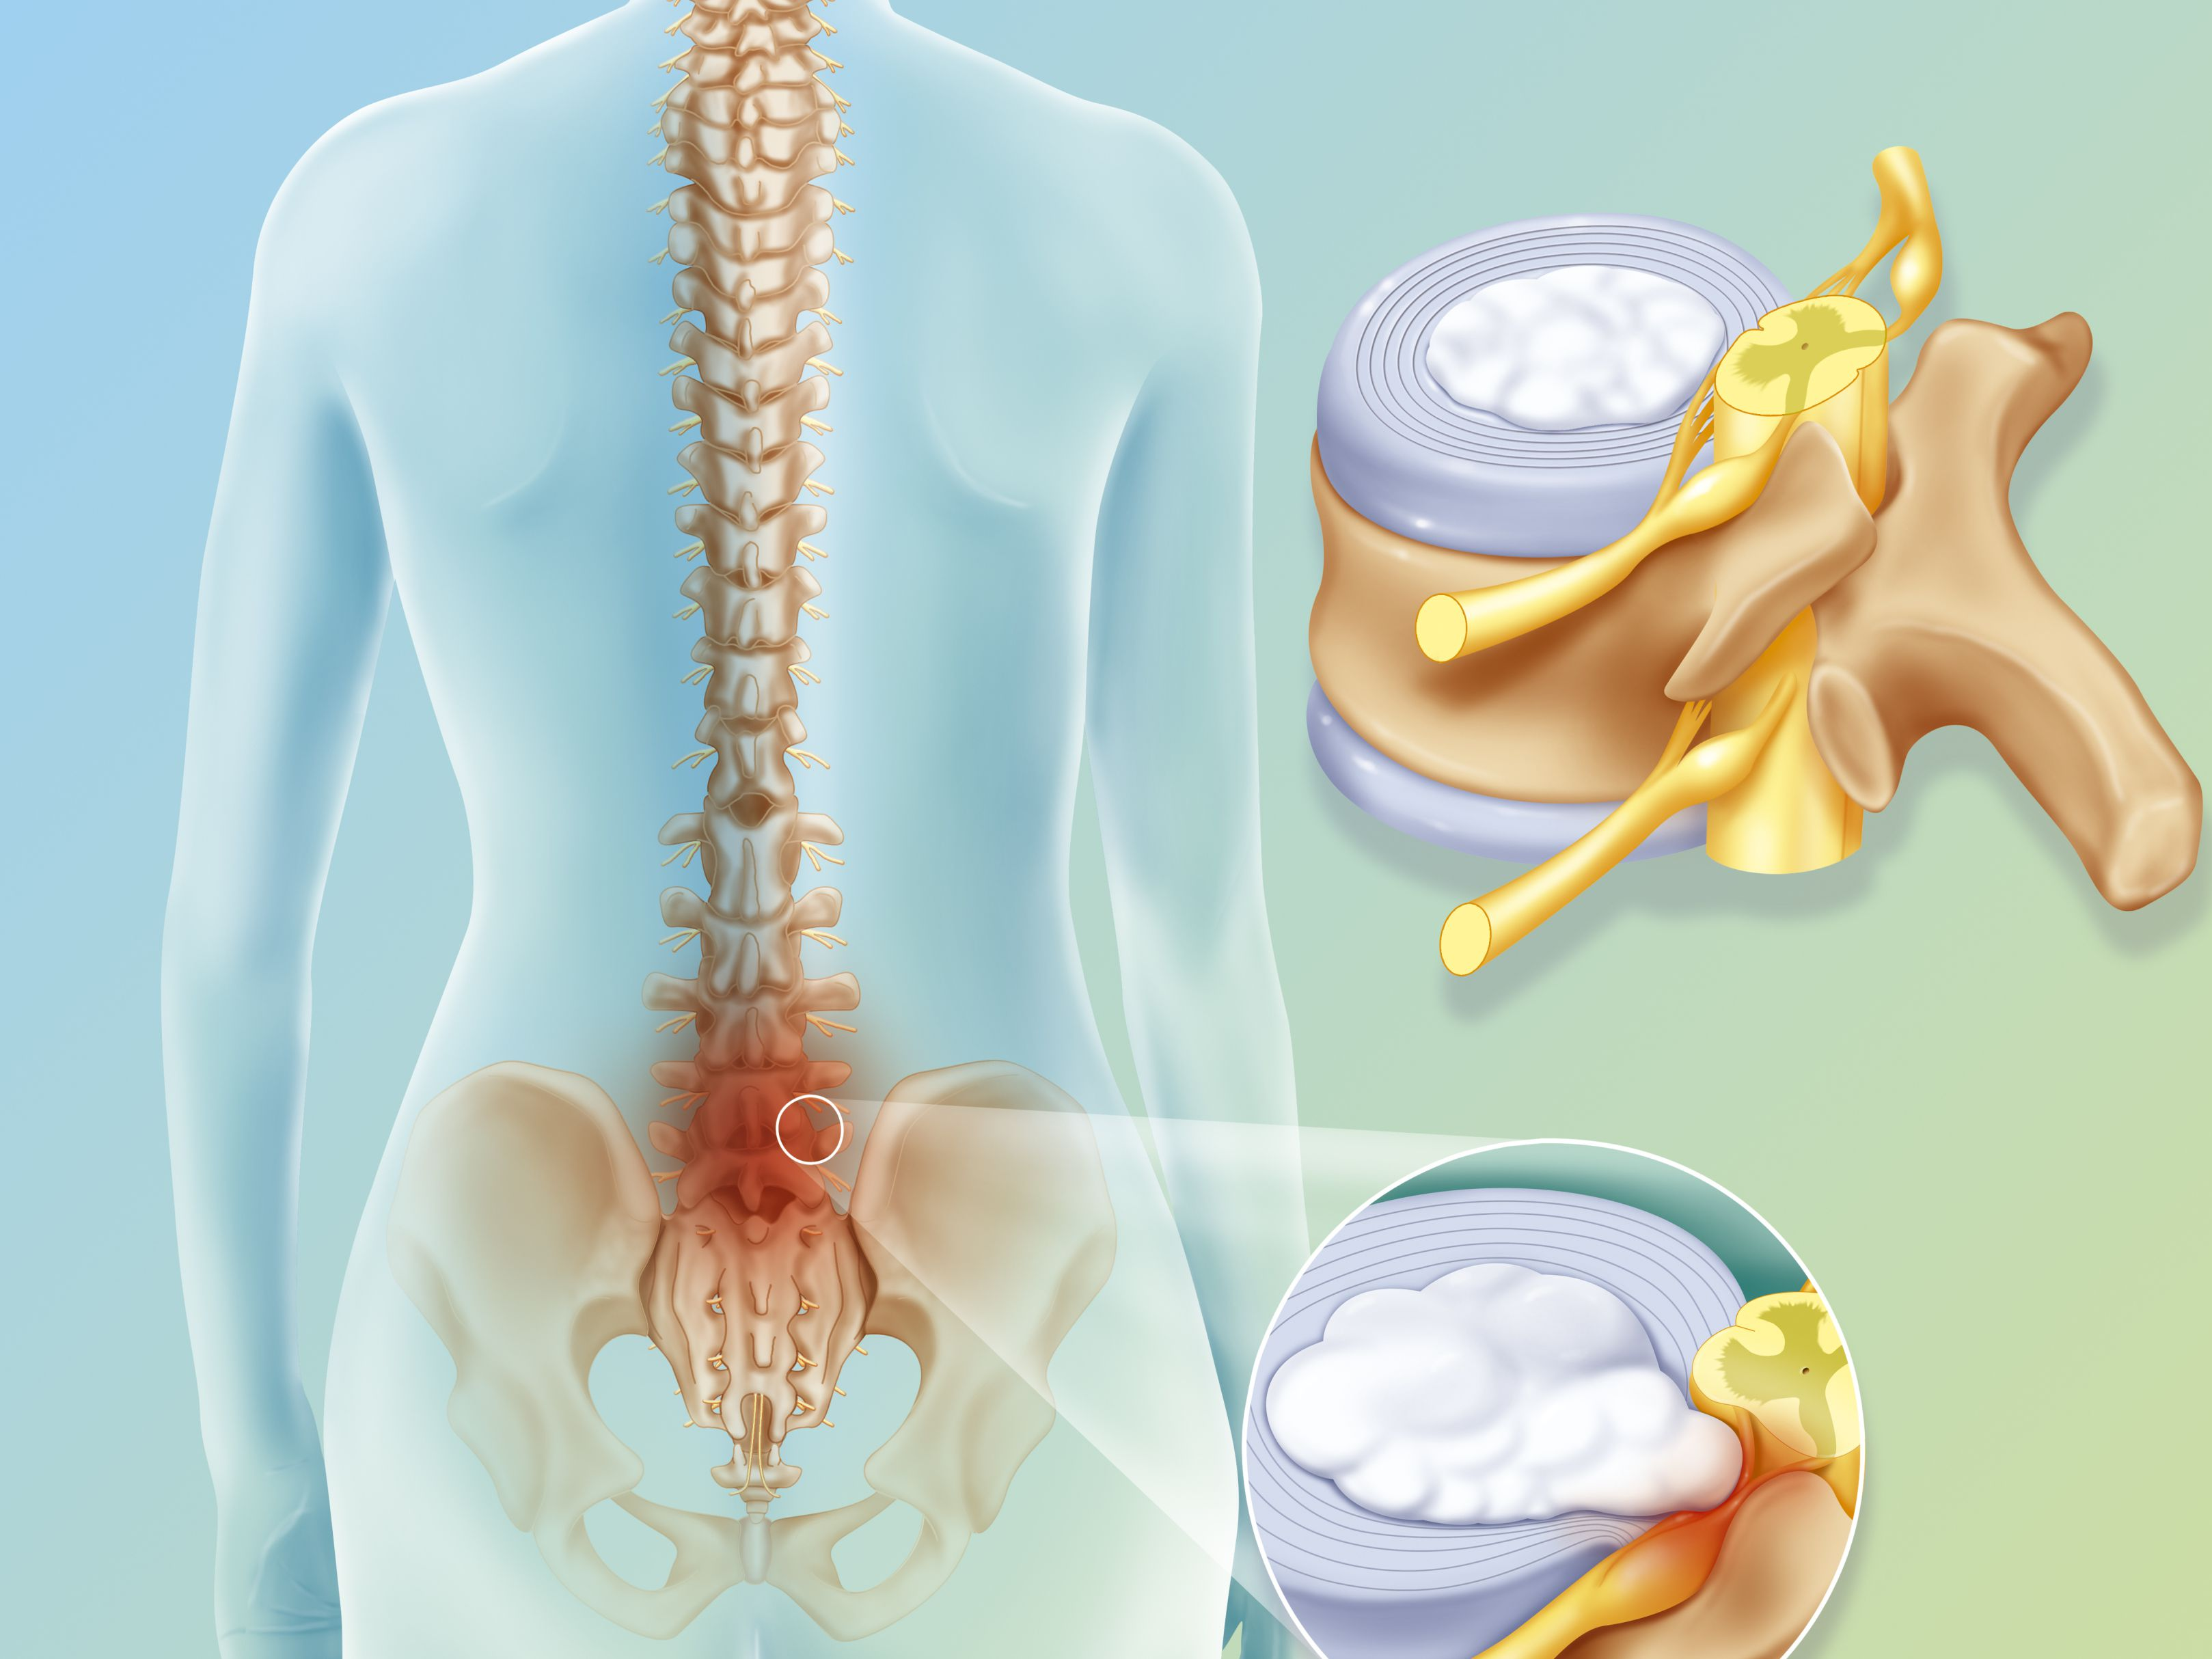 Reasons for Revision Spine Surgery